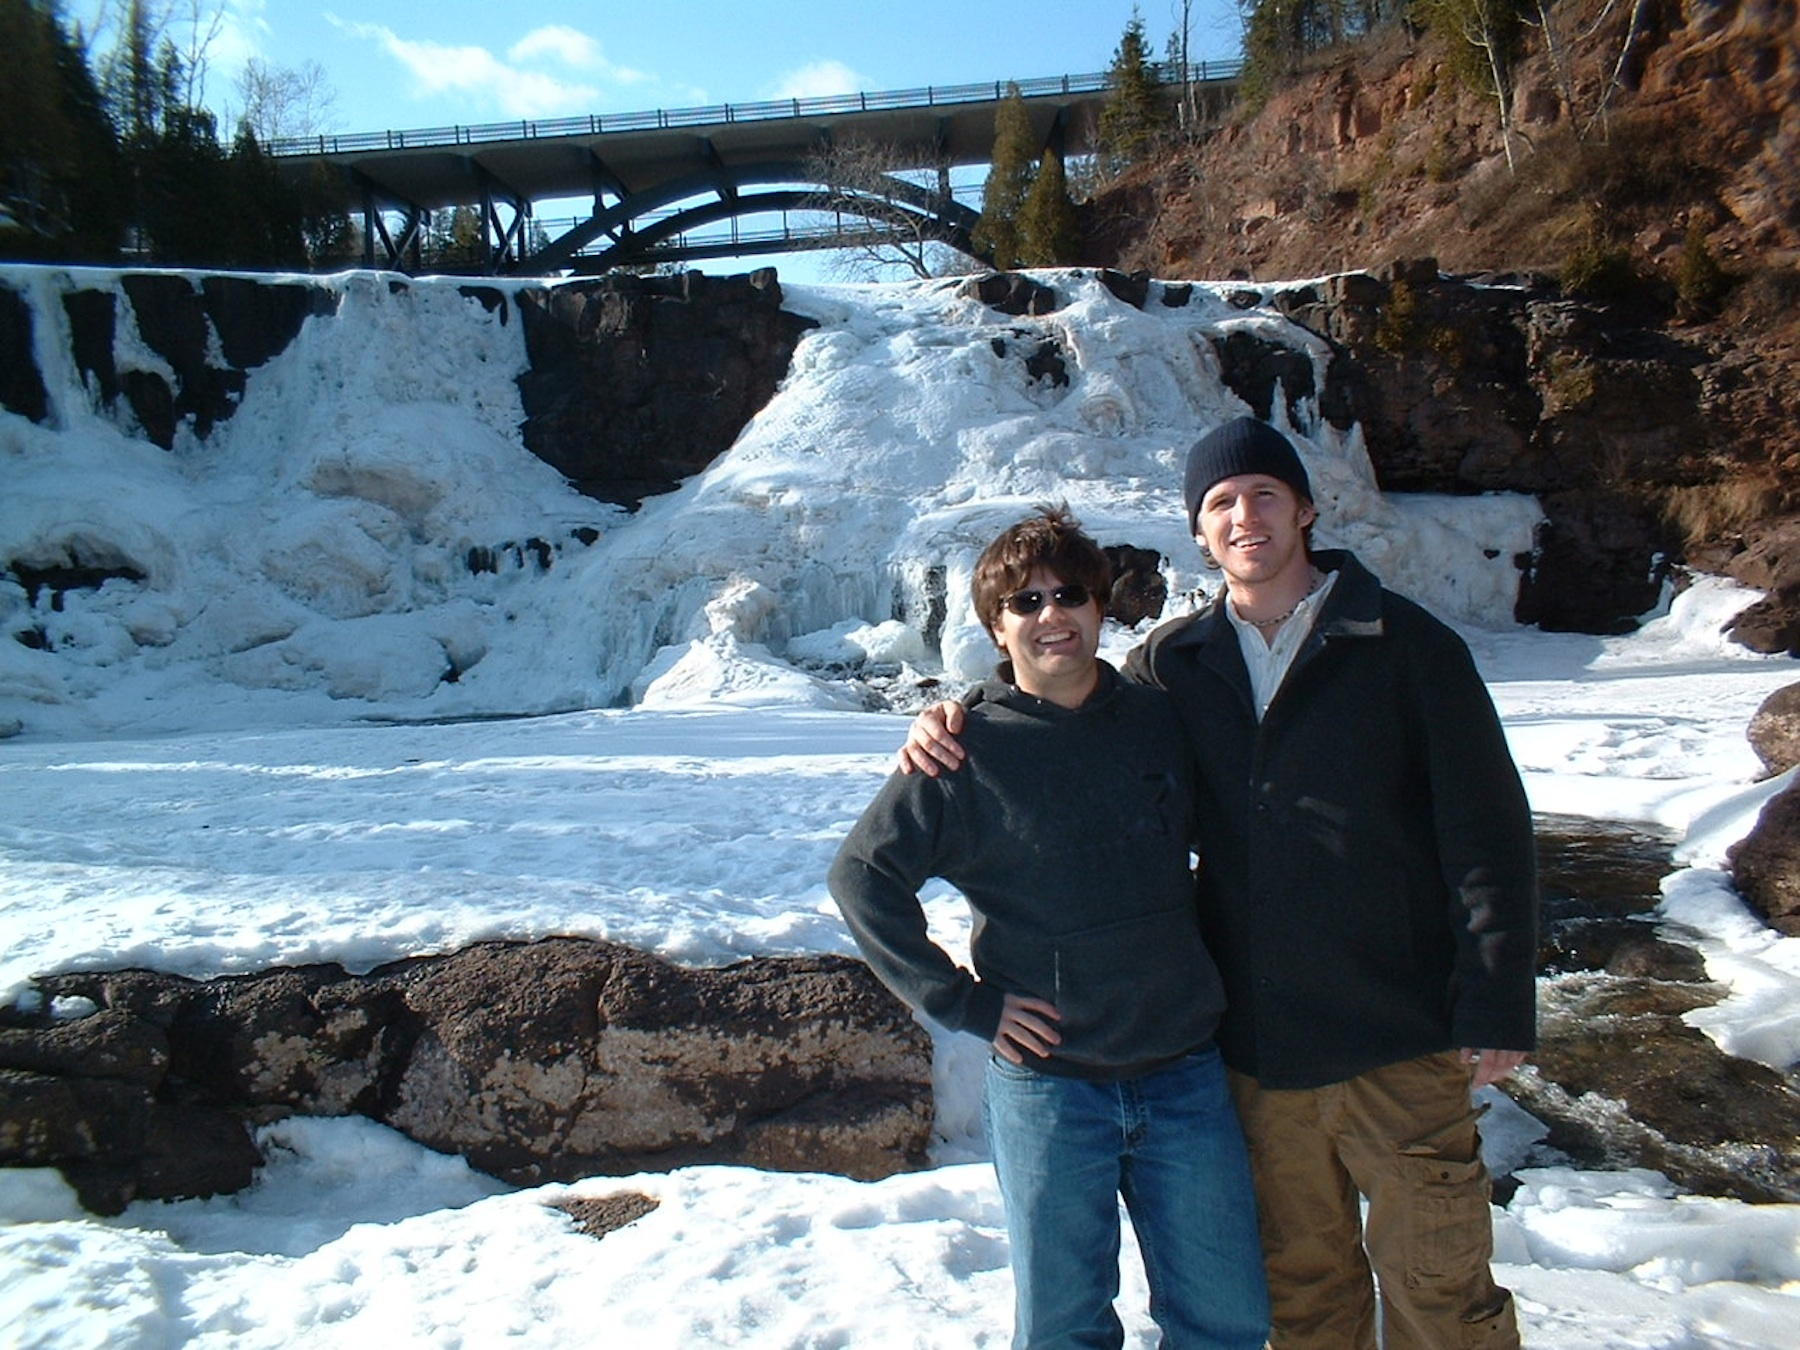 Andy and his roommate visit Gooseberry Falls just days before he falls ill.